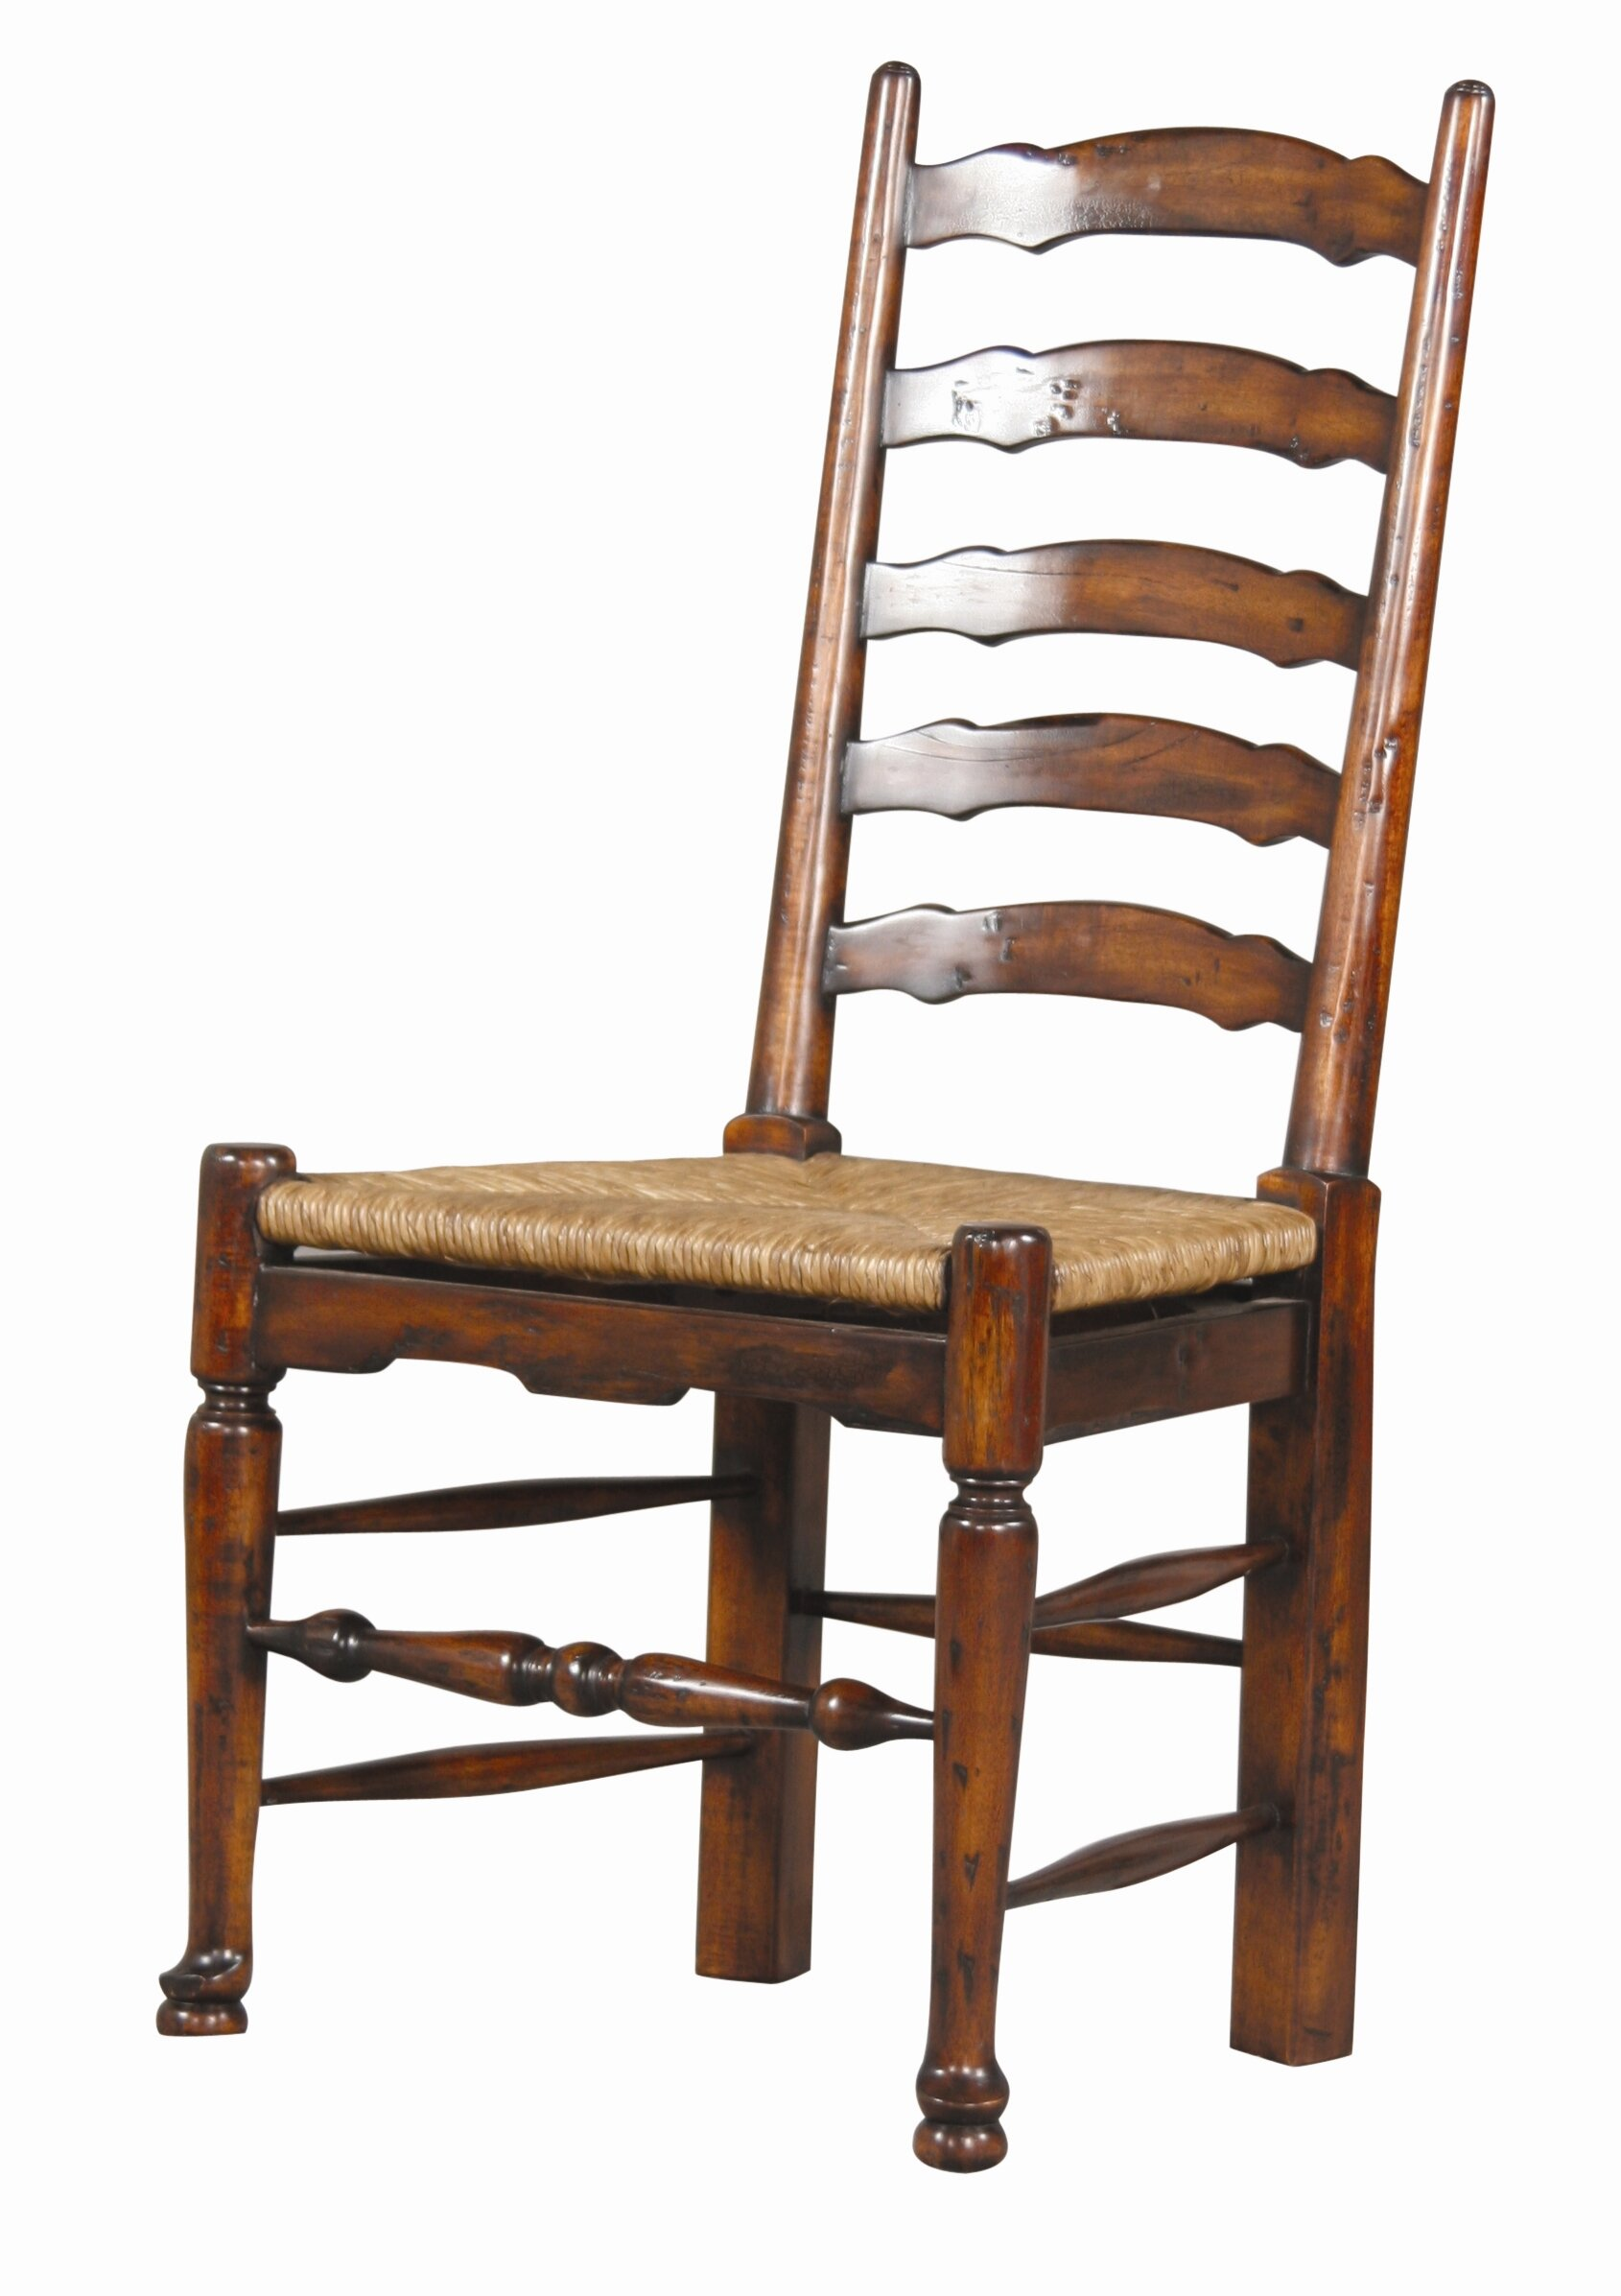 Furniture Classics English Country Solid Wood Ladder Back Side Chair Reviews Wayfair